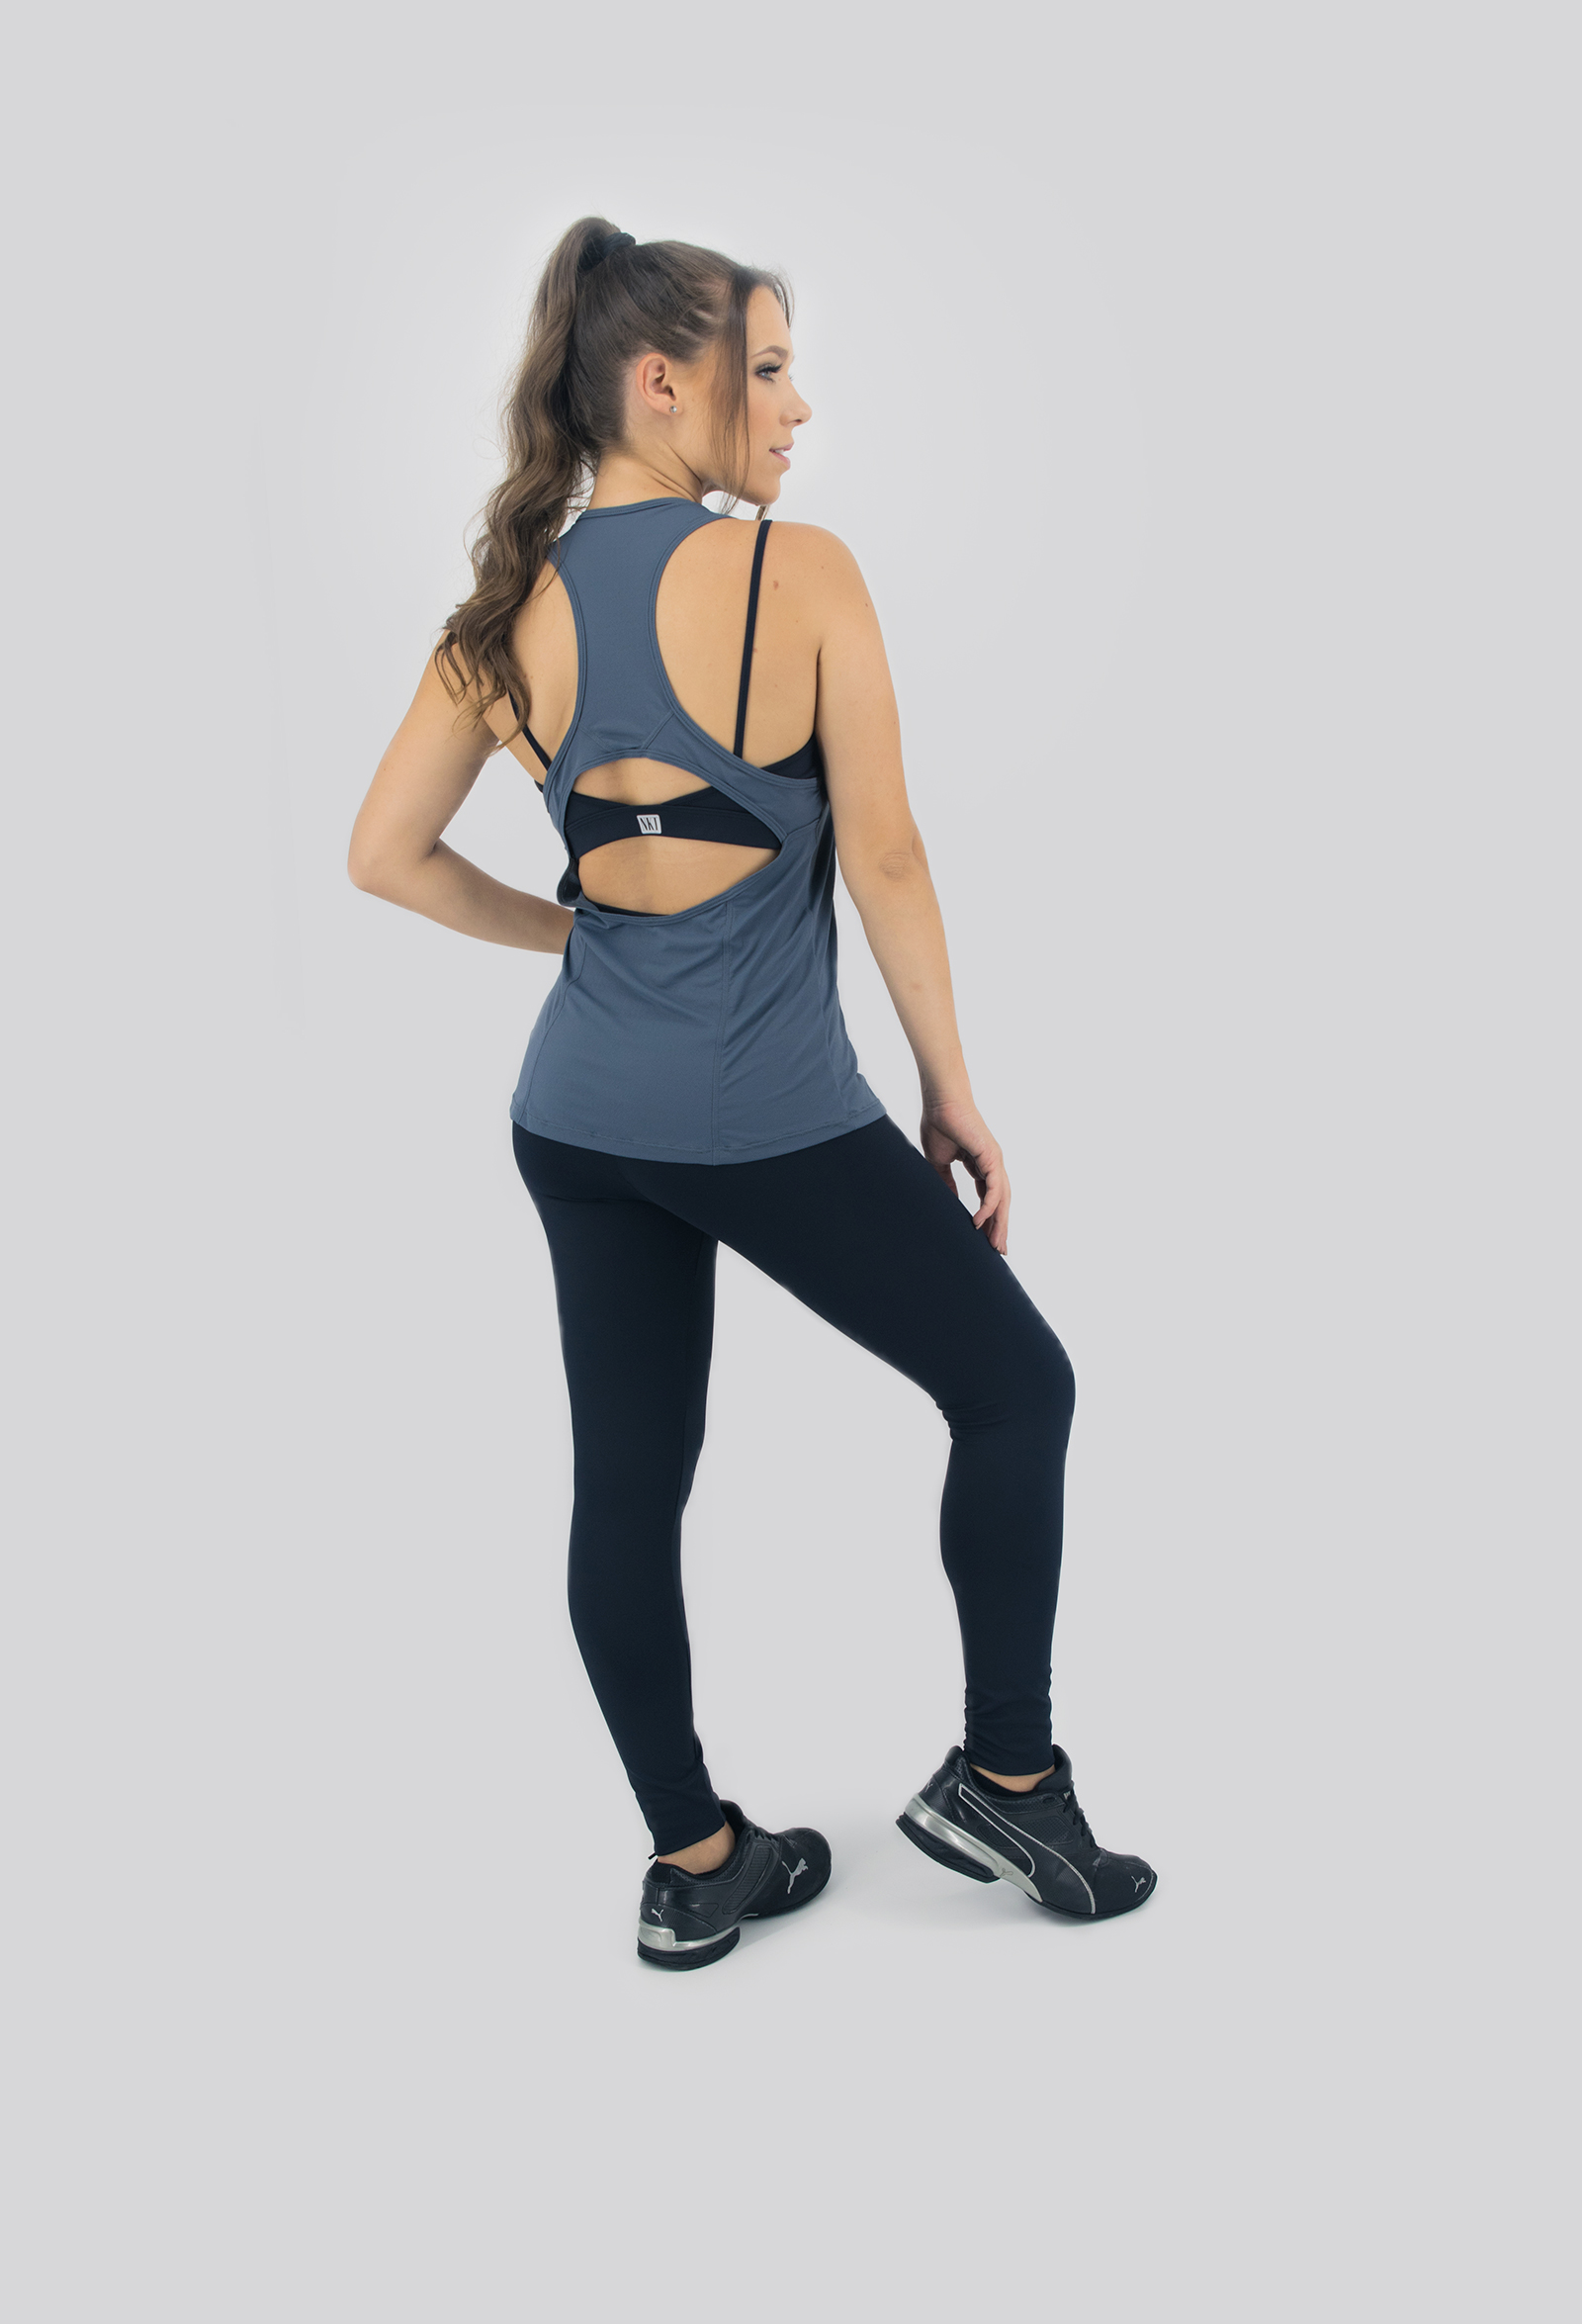 Regata Clipping Chumbo, Coleção Move Your Body - NKT Fitwear Moda Fitness